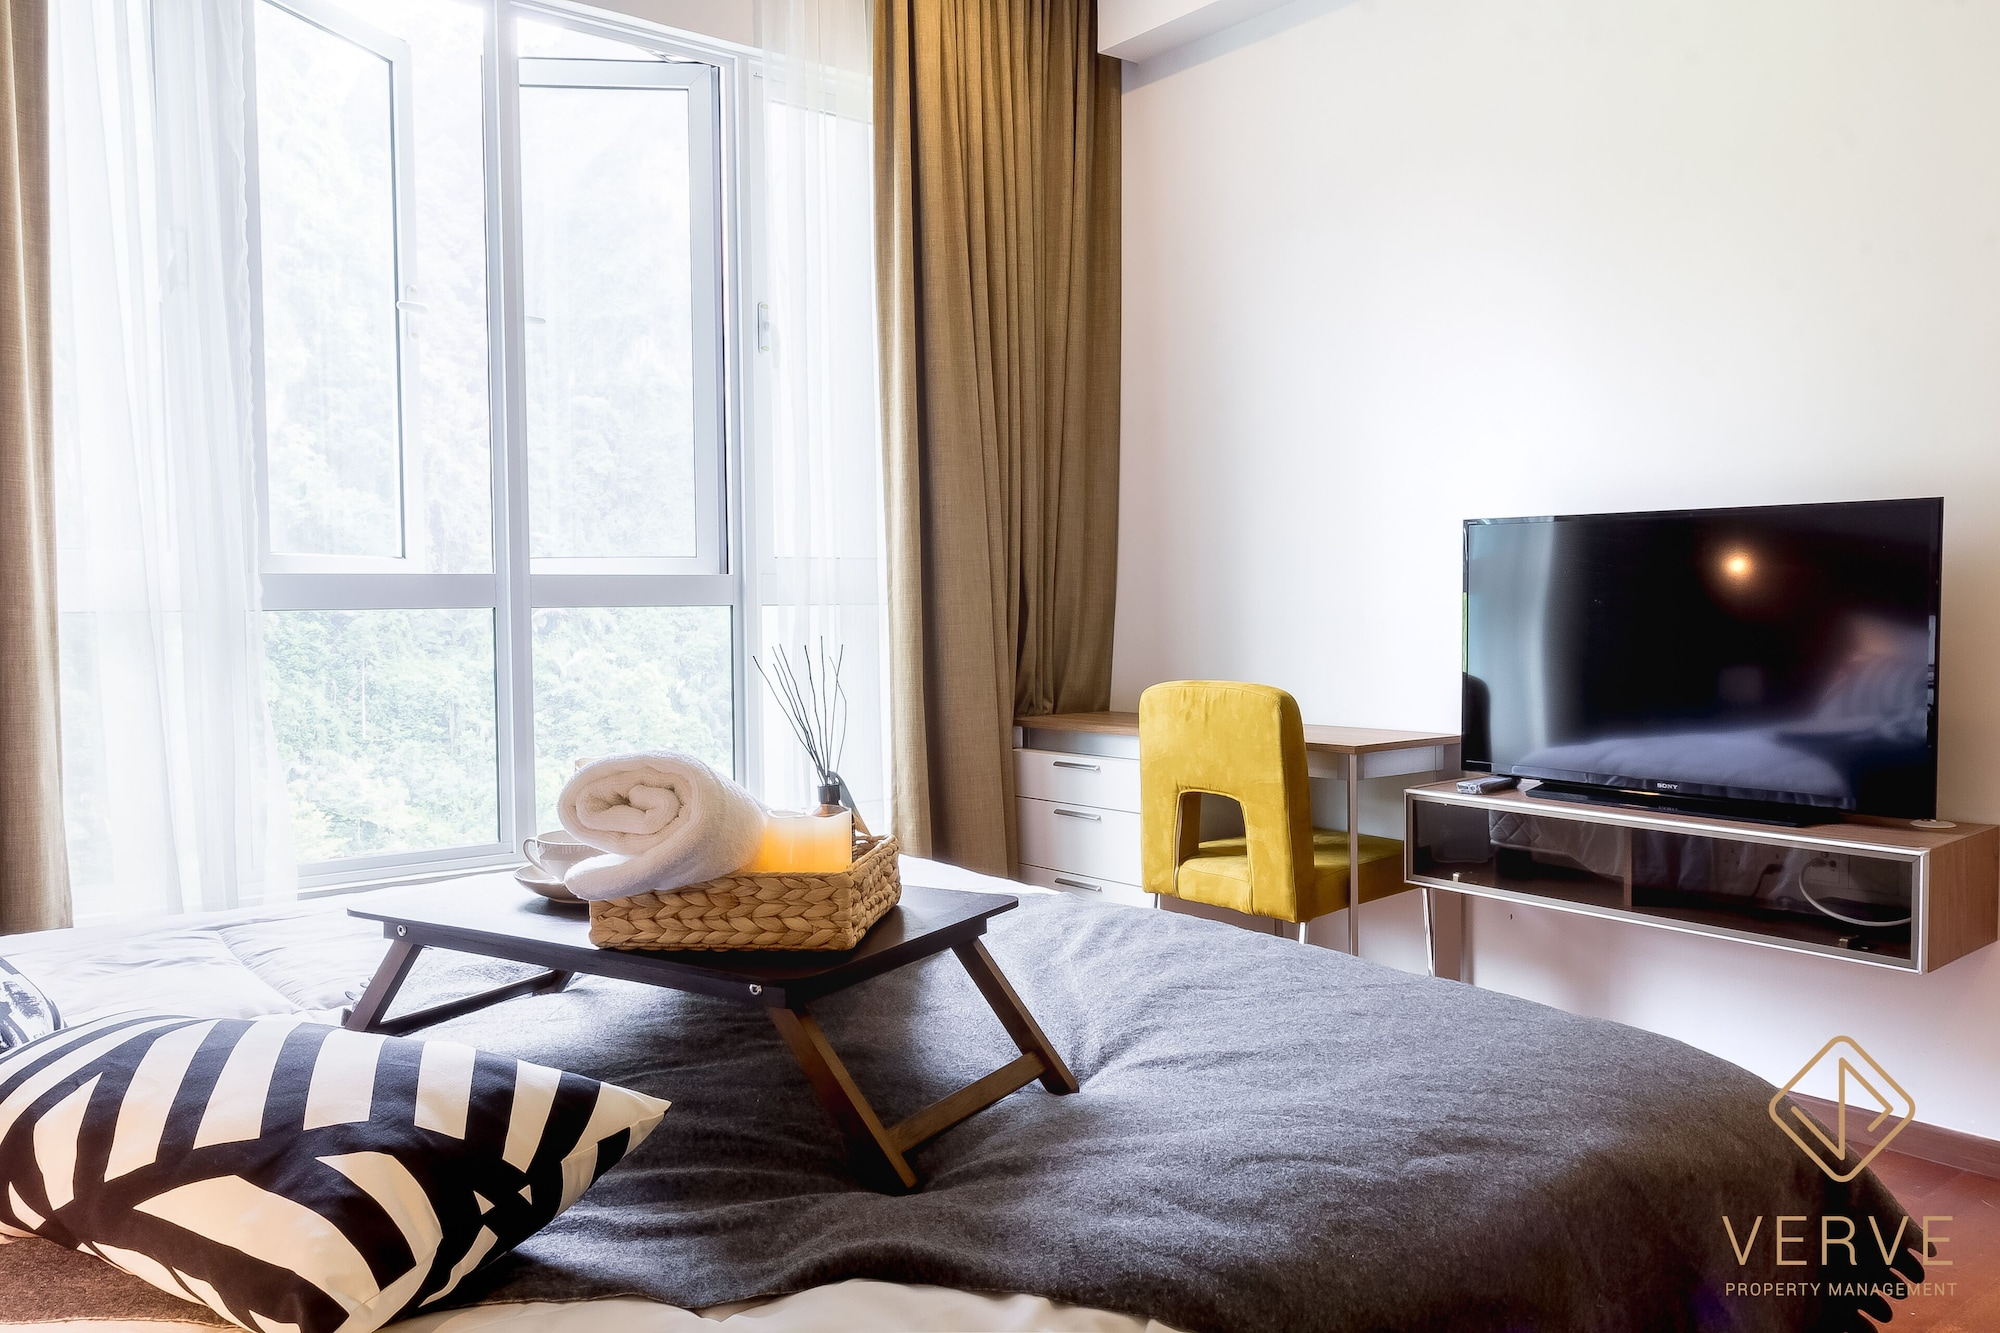 The Haven Lakeside Suites by Verve, Kinta